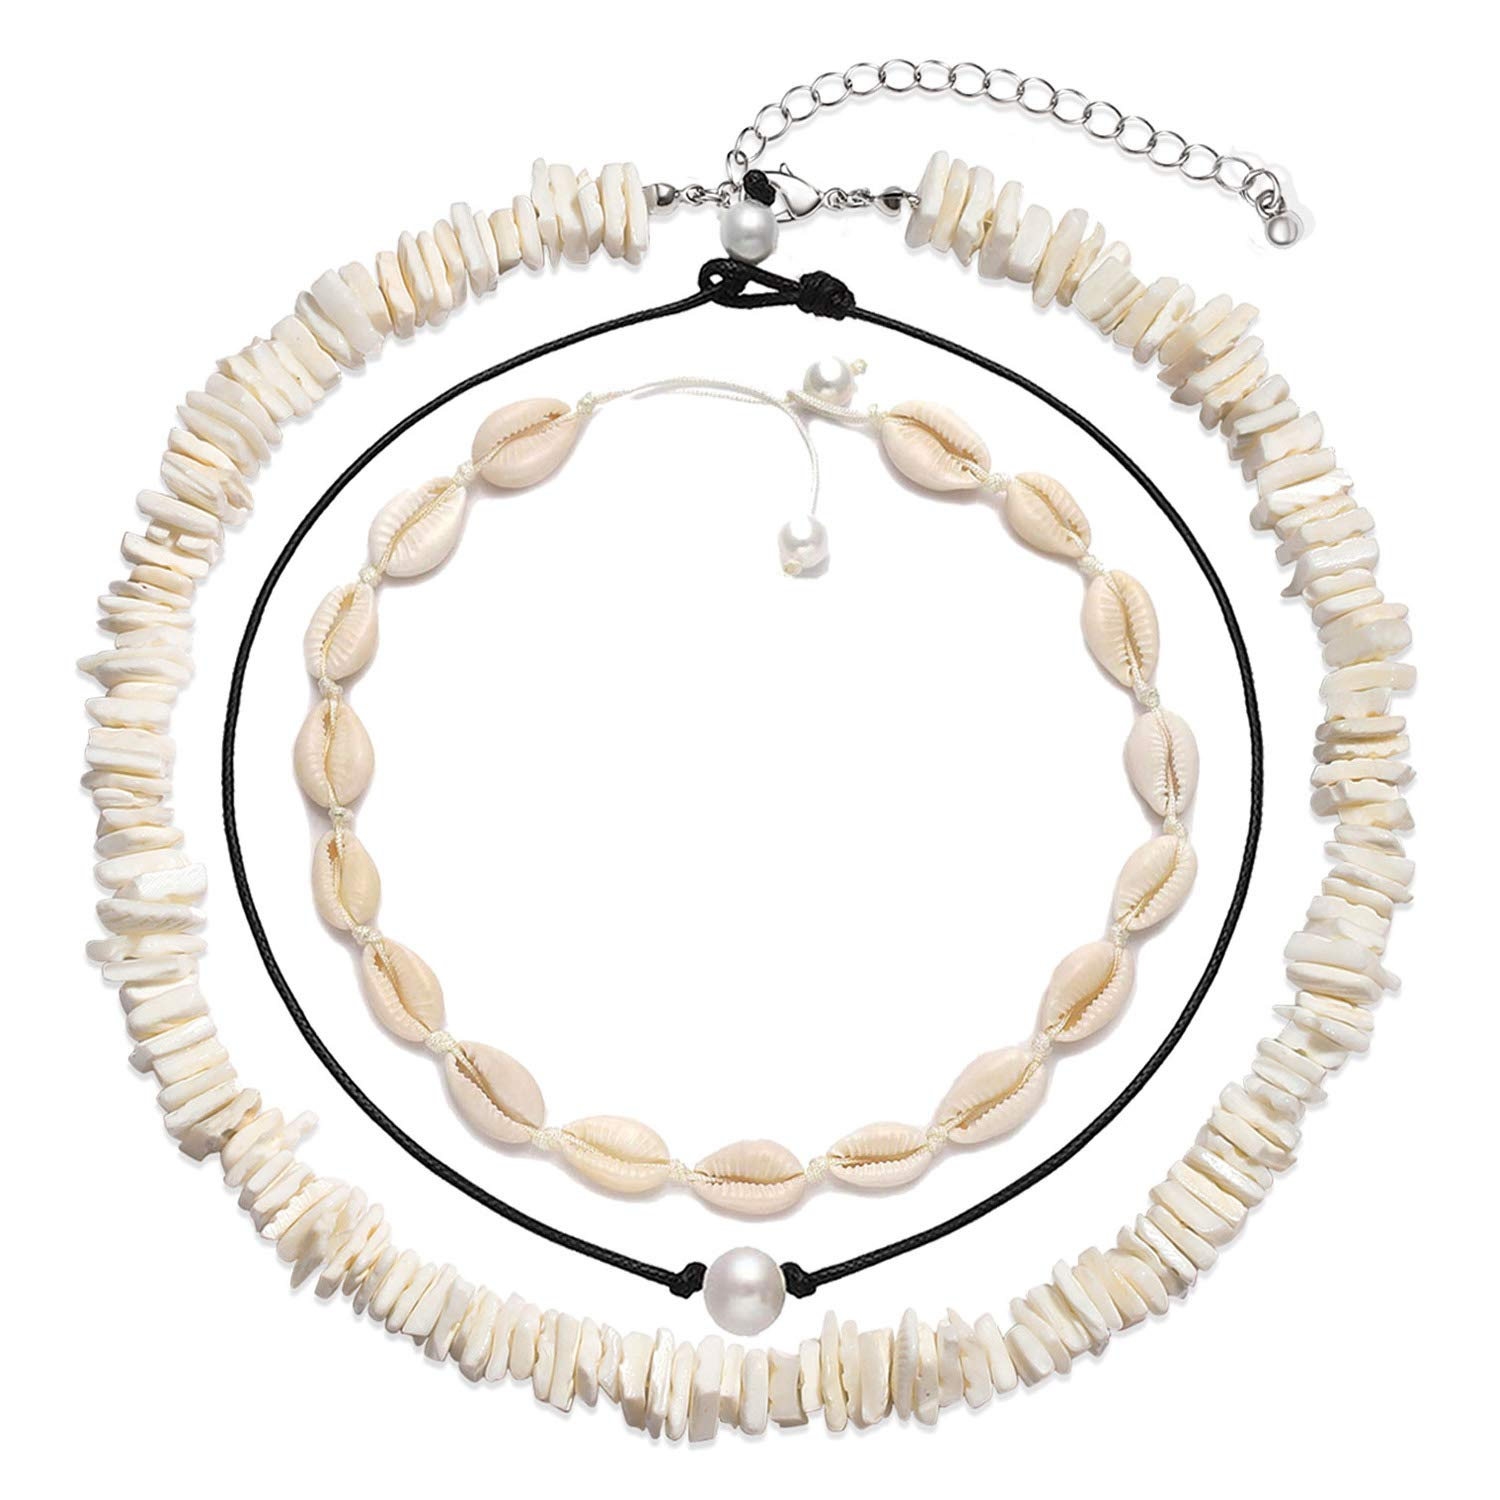 Puka Shell Choker Necklace Sea Shell Necklace Anklets Set Summer Beach Jewelry